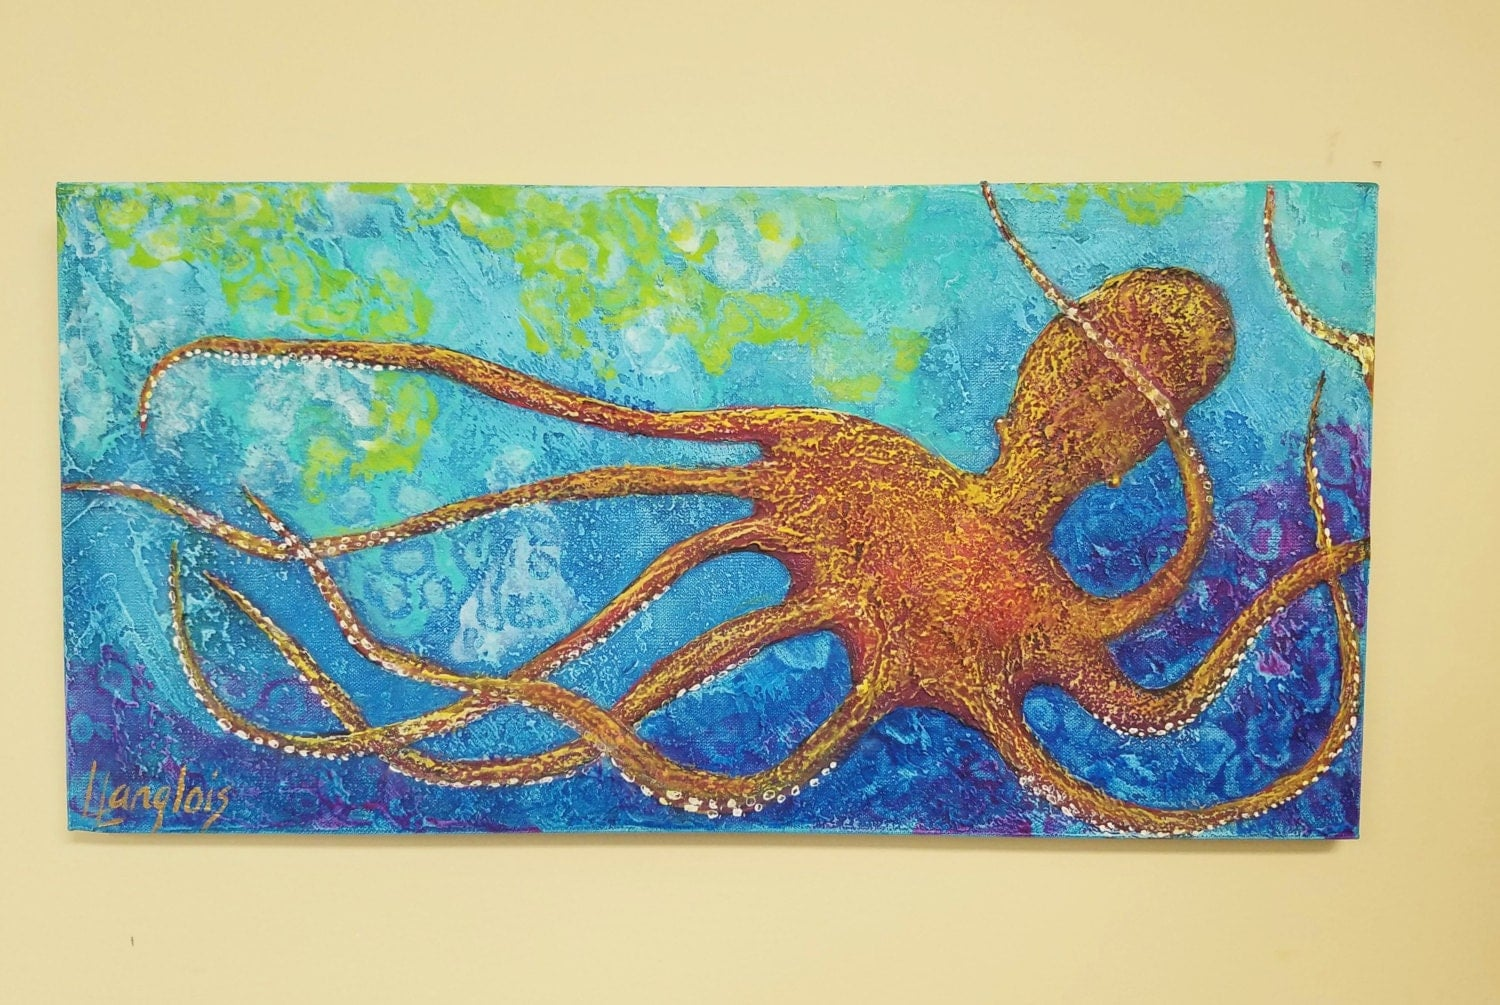 Octopus painting colorful orange textured octopus ocean for Colorful octopus painting